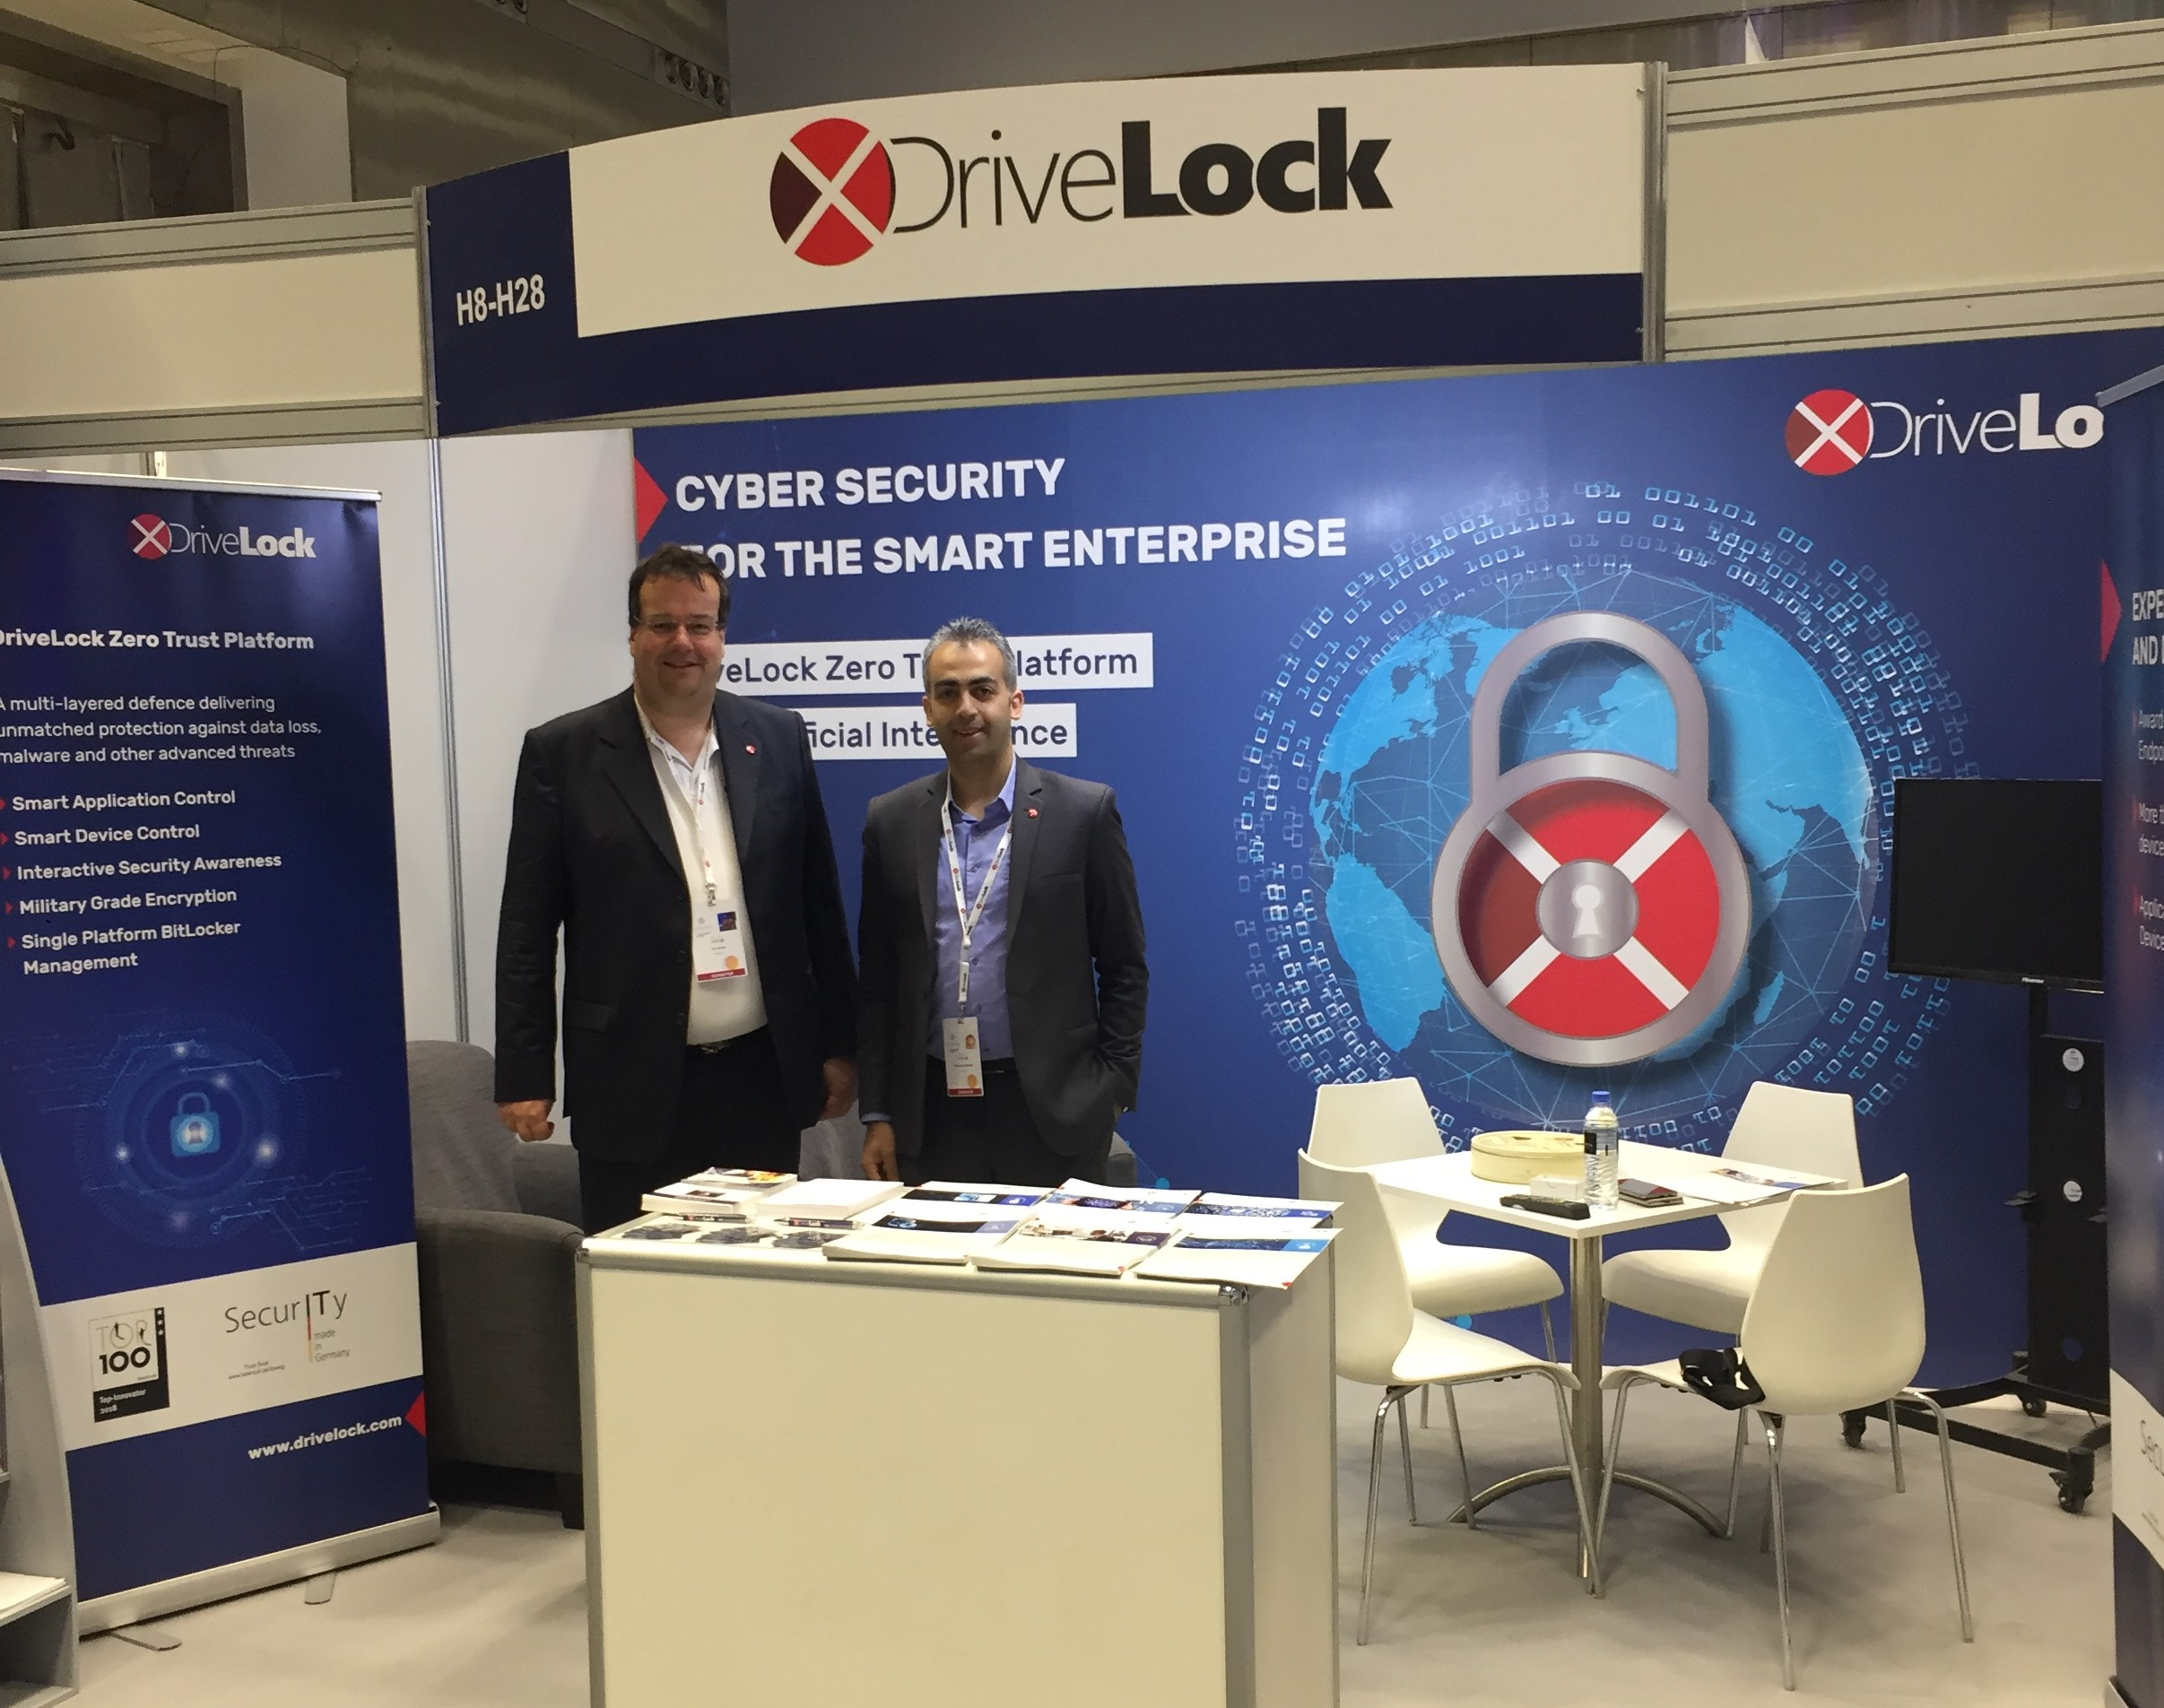 DriveLock exhibiting at Qitcom 2019 in Doha